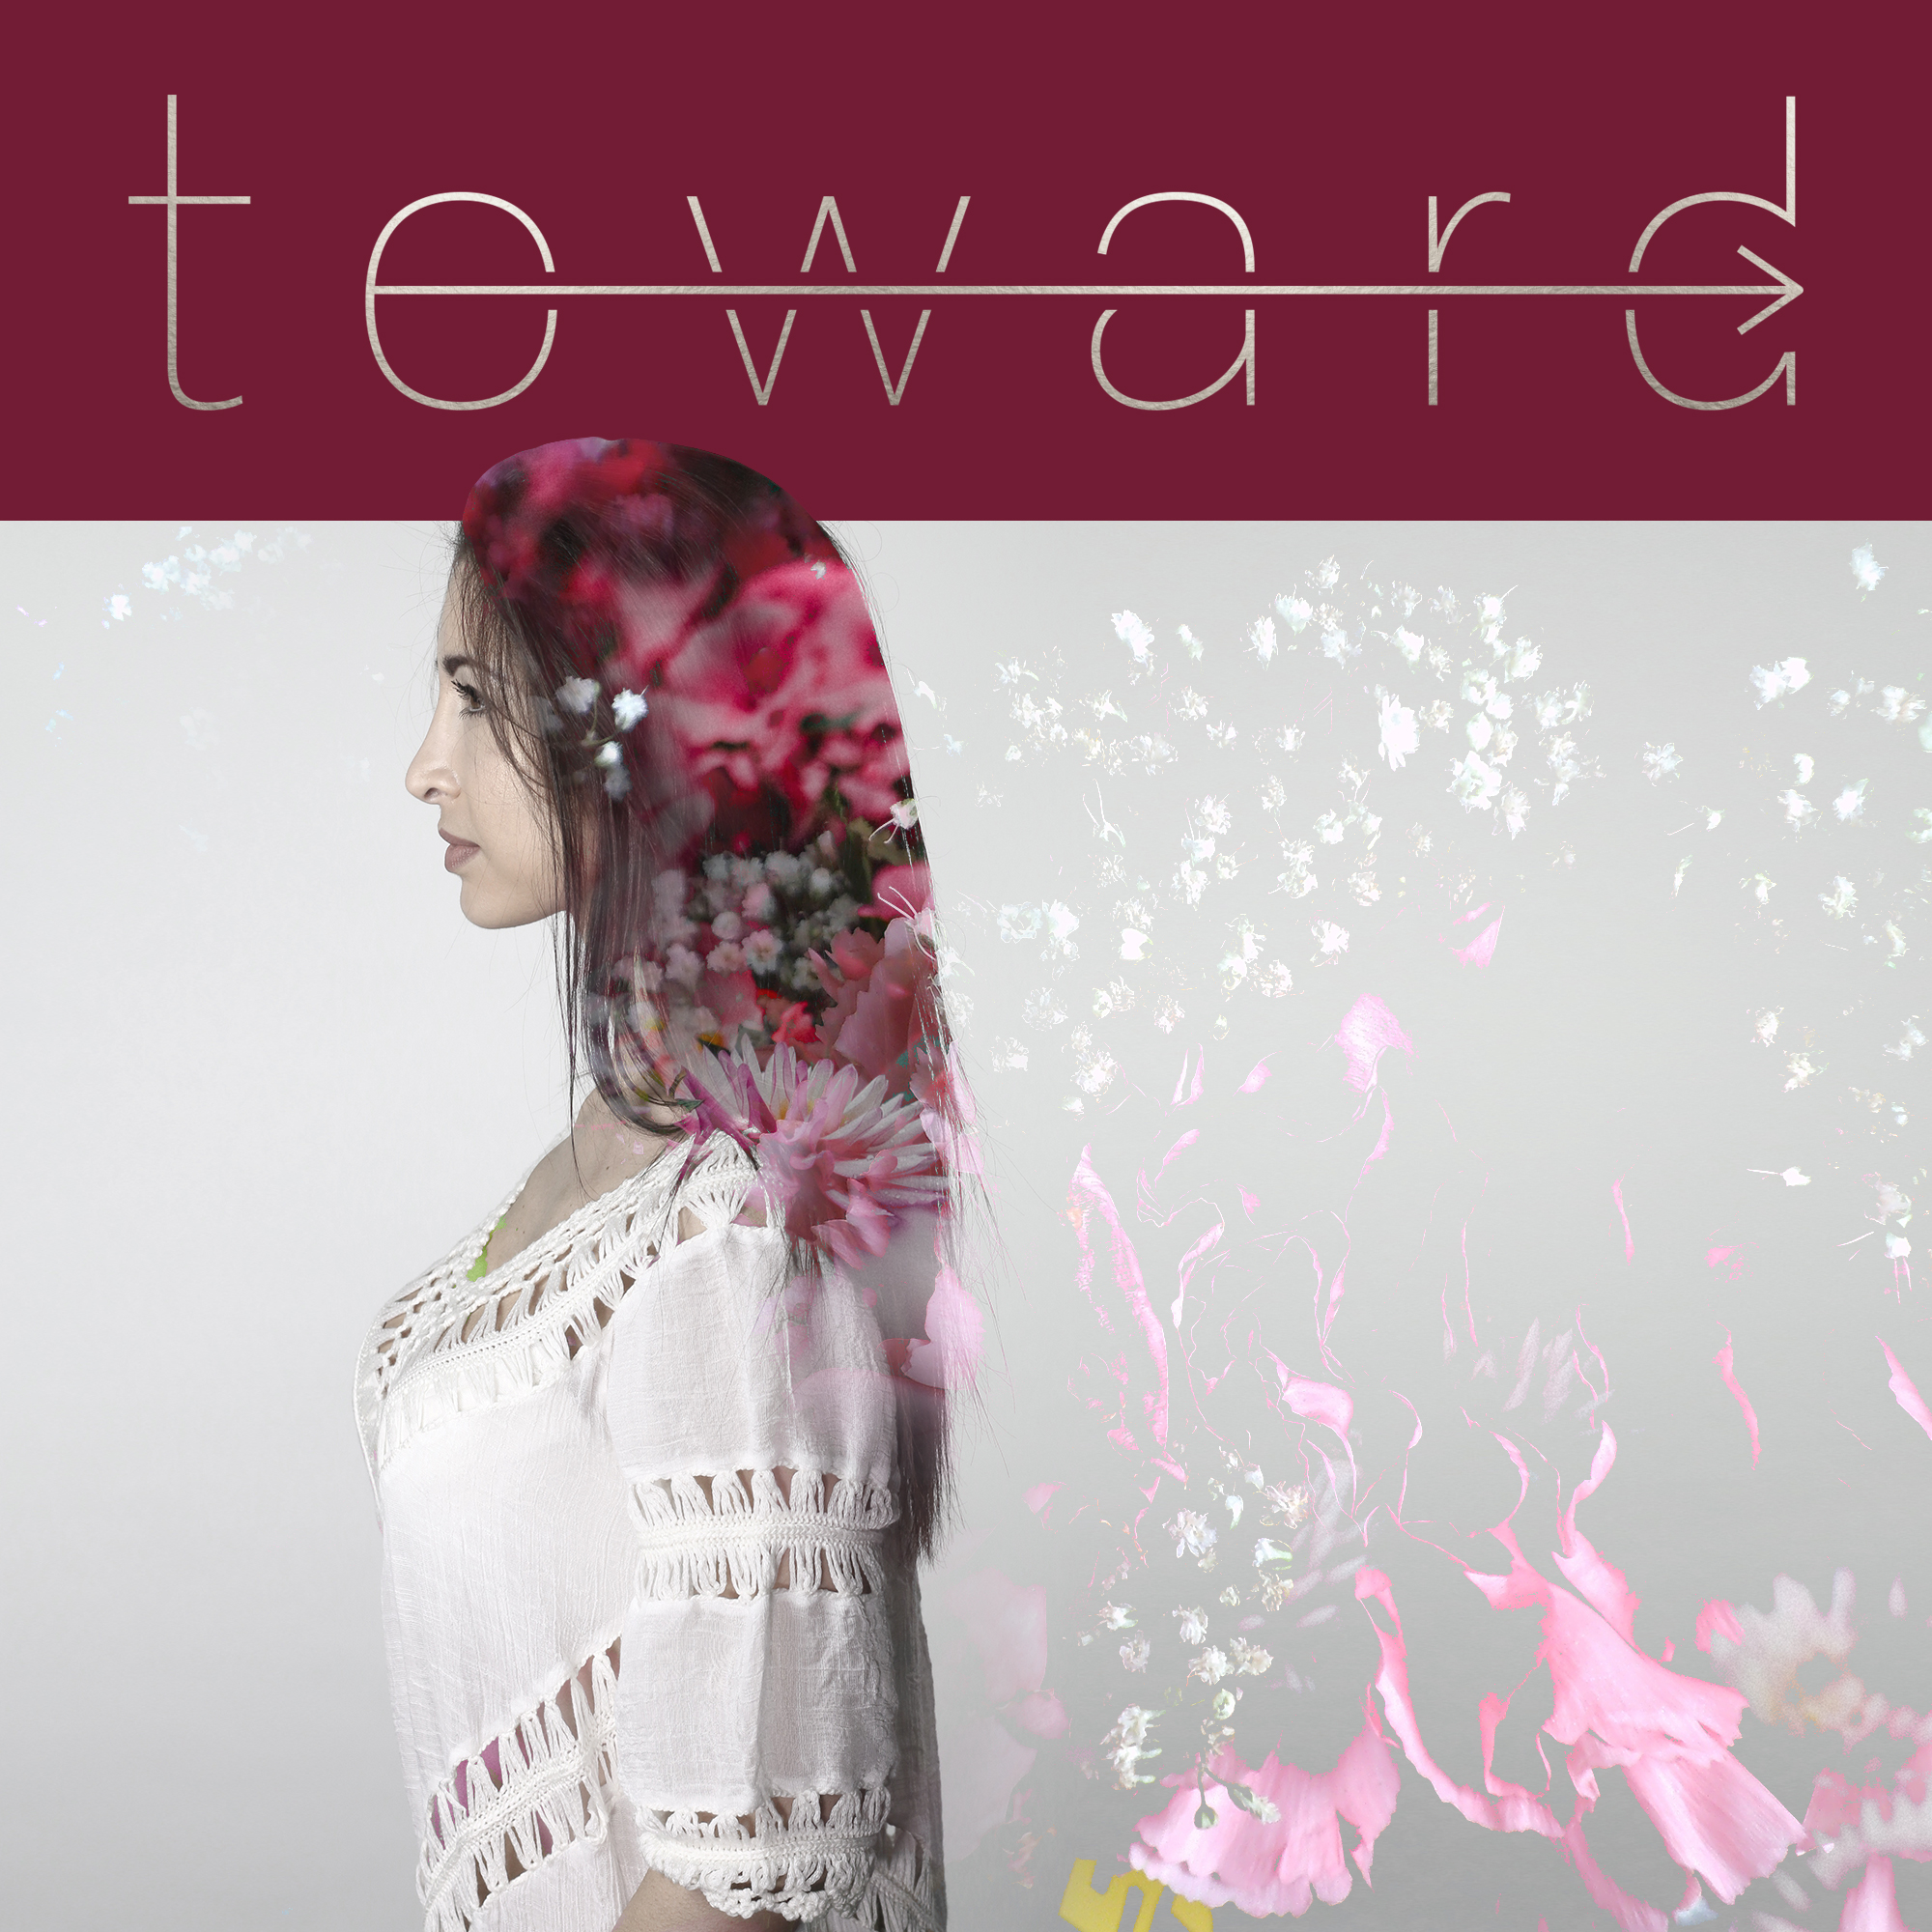 Toward-Cover-3.jpg